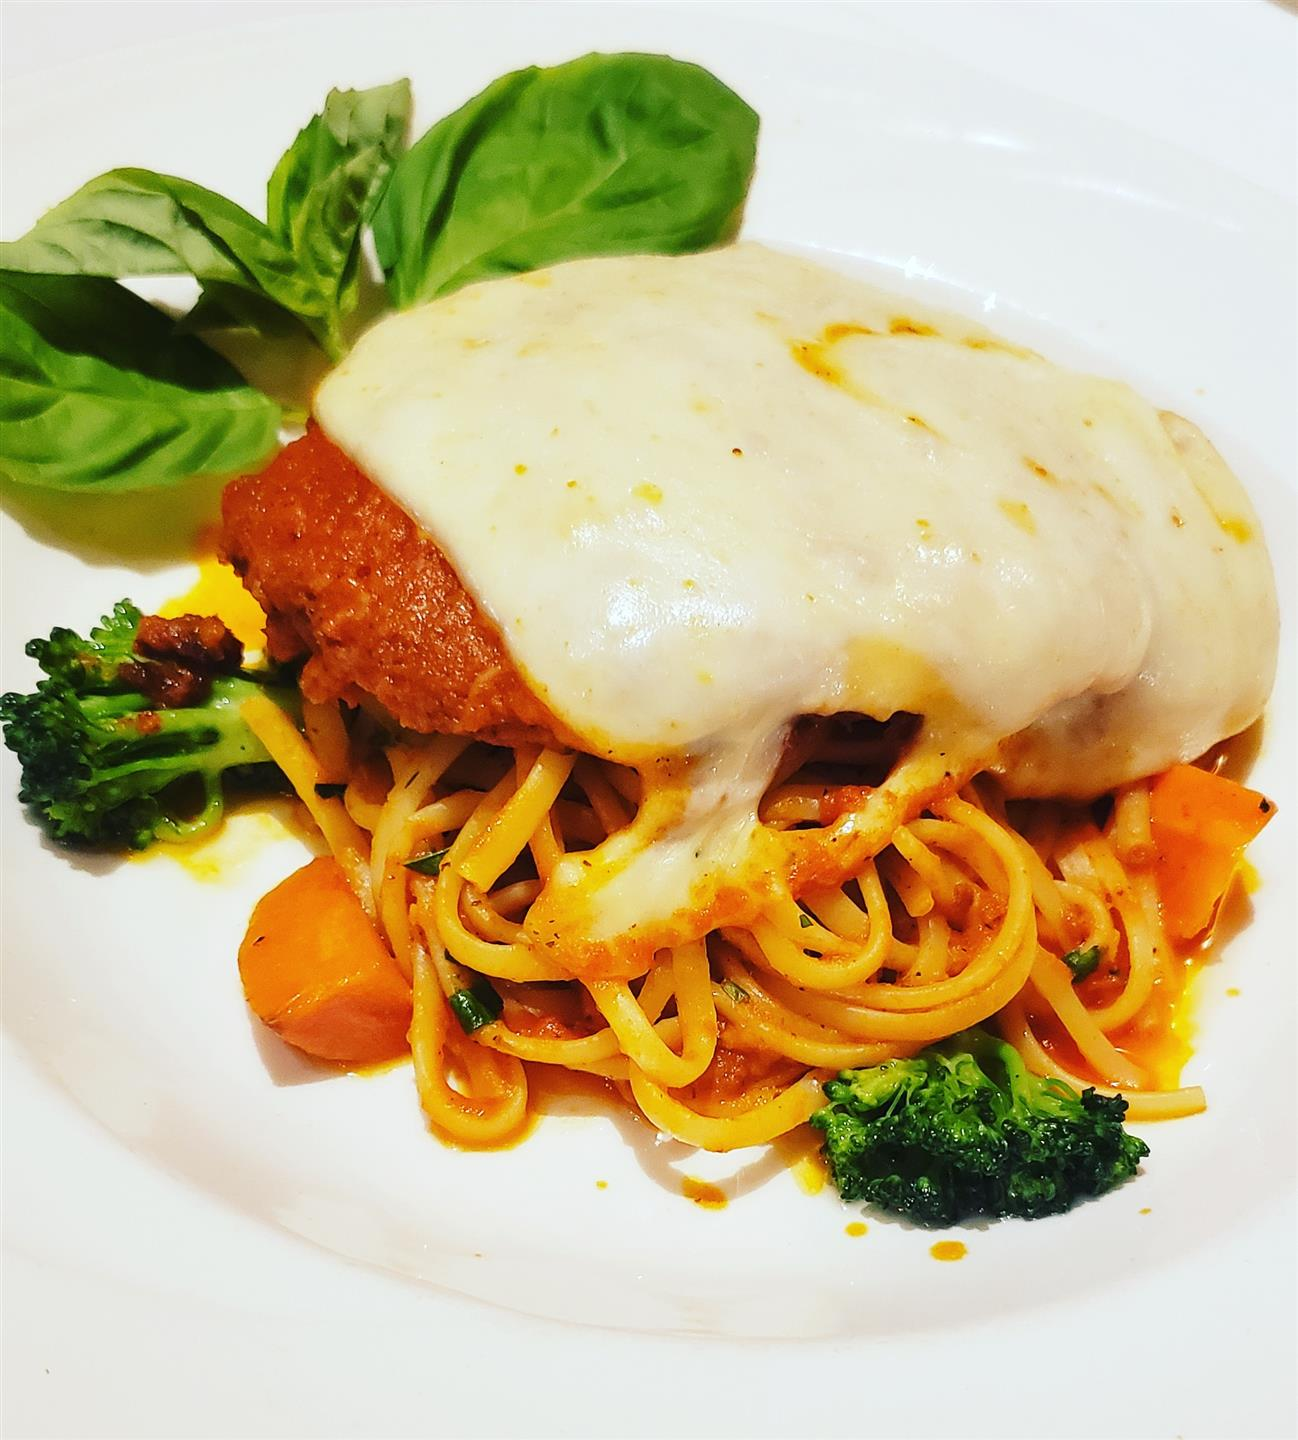 Parmesan Chicken. Chicken breast breaded and topped with marinara sauce and mozzarella cheese baked until bubbly. Served with fresh linguine pasta and seasonal vegetables